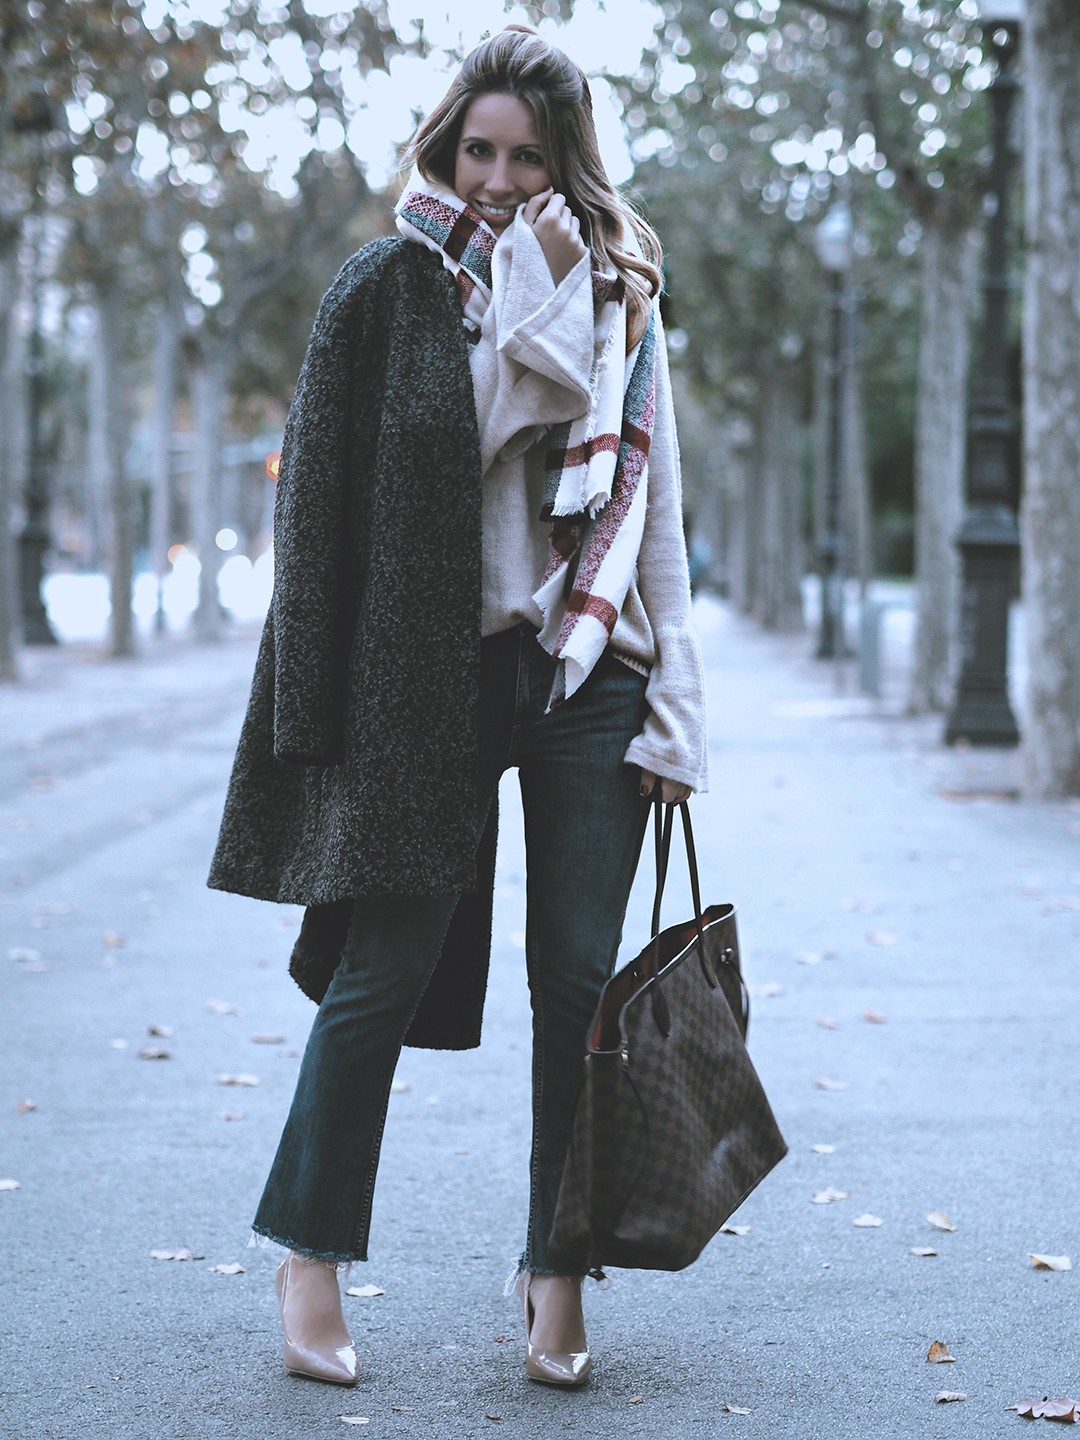 autumn-casual-chic-style-fashion-blog-2016maxi-scarf-outfit-street-style-blogger-2016-mangoimg_2495